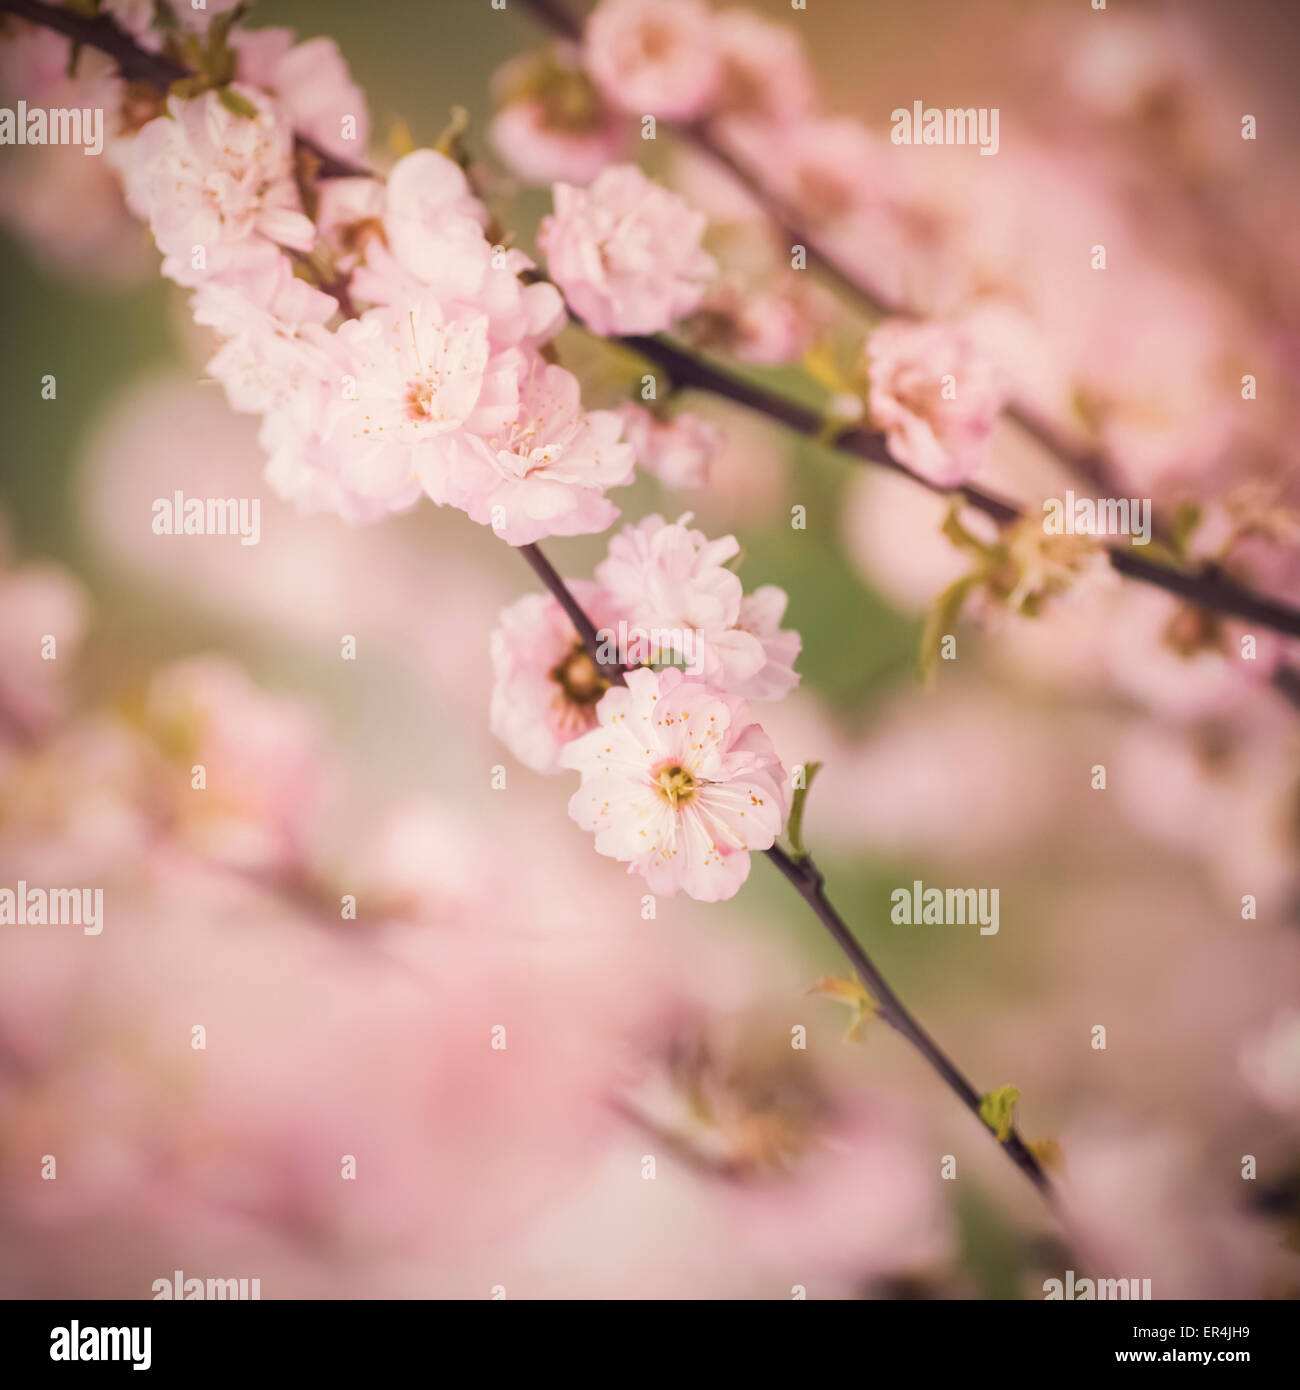 Beautiful flowers with shallow focus - Stock Image